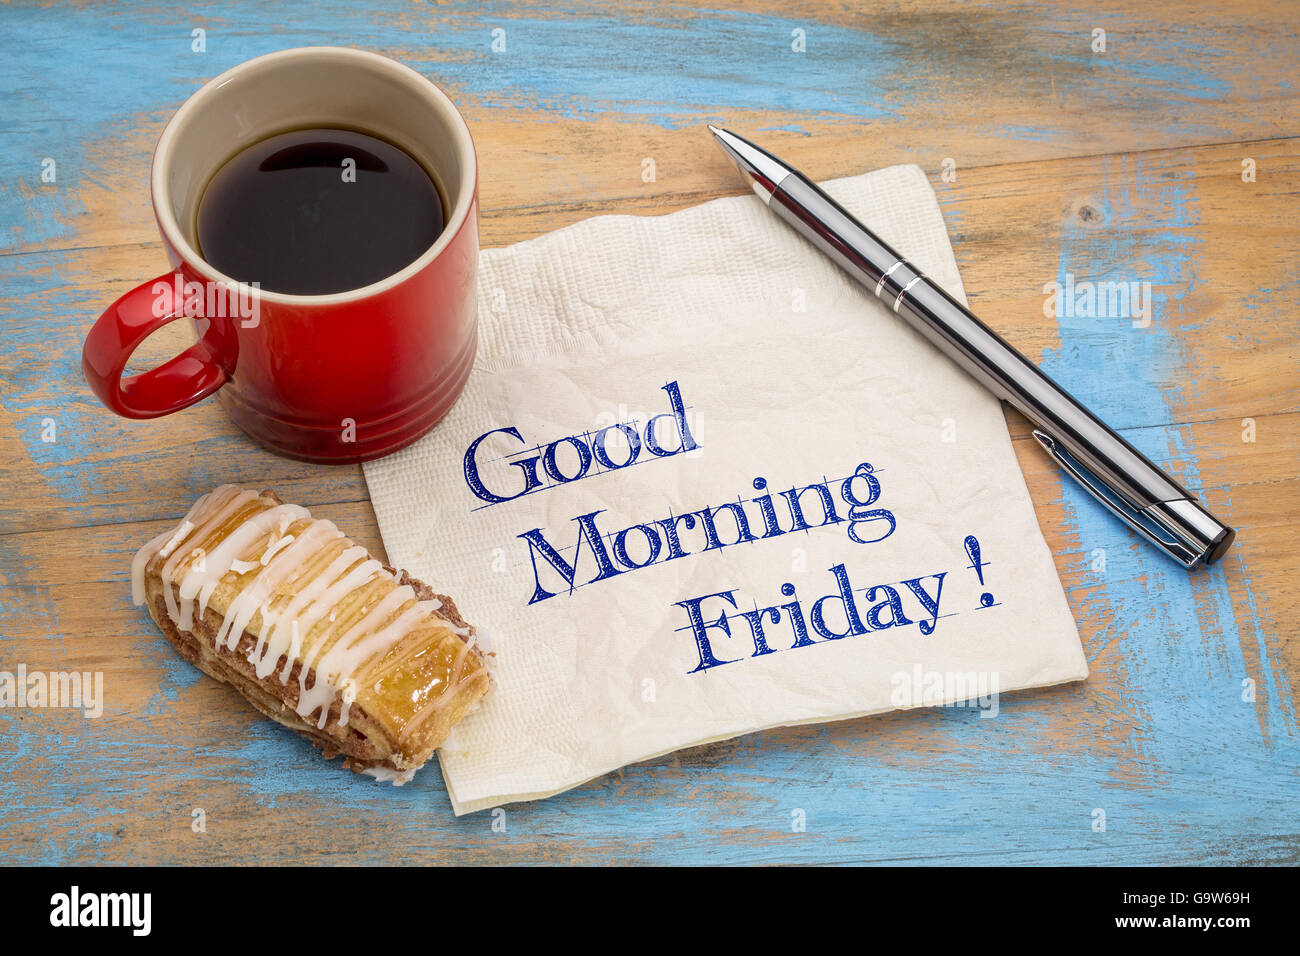 Good Morning Friday Handwriting On A Napkin With A Cup Of Coffee